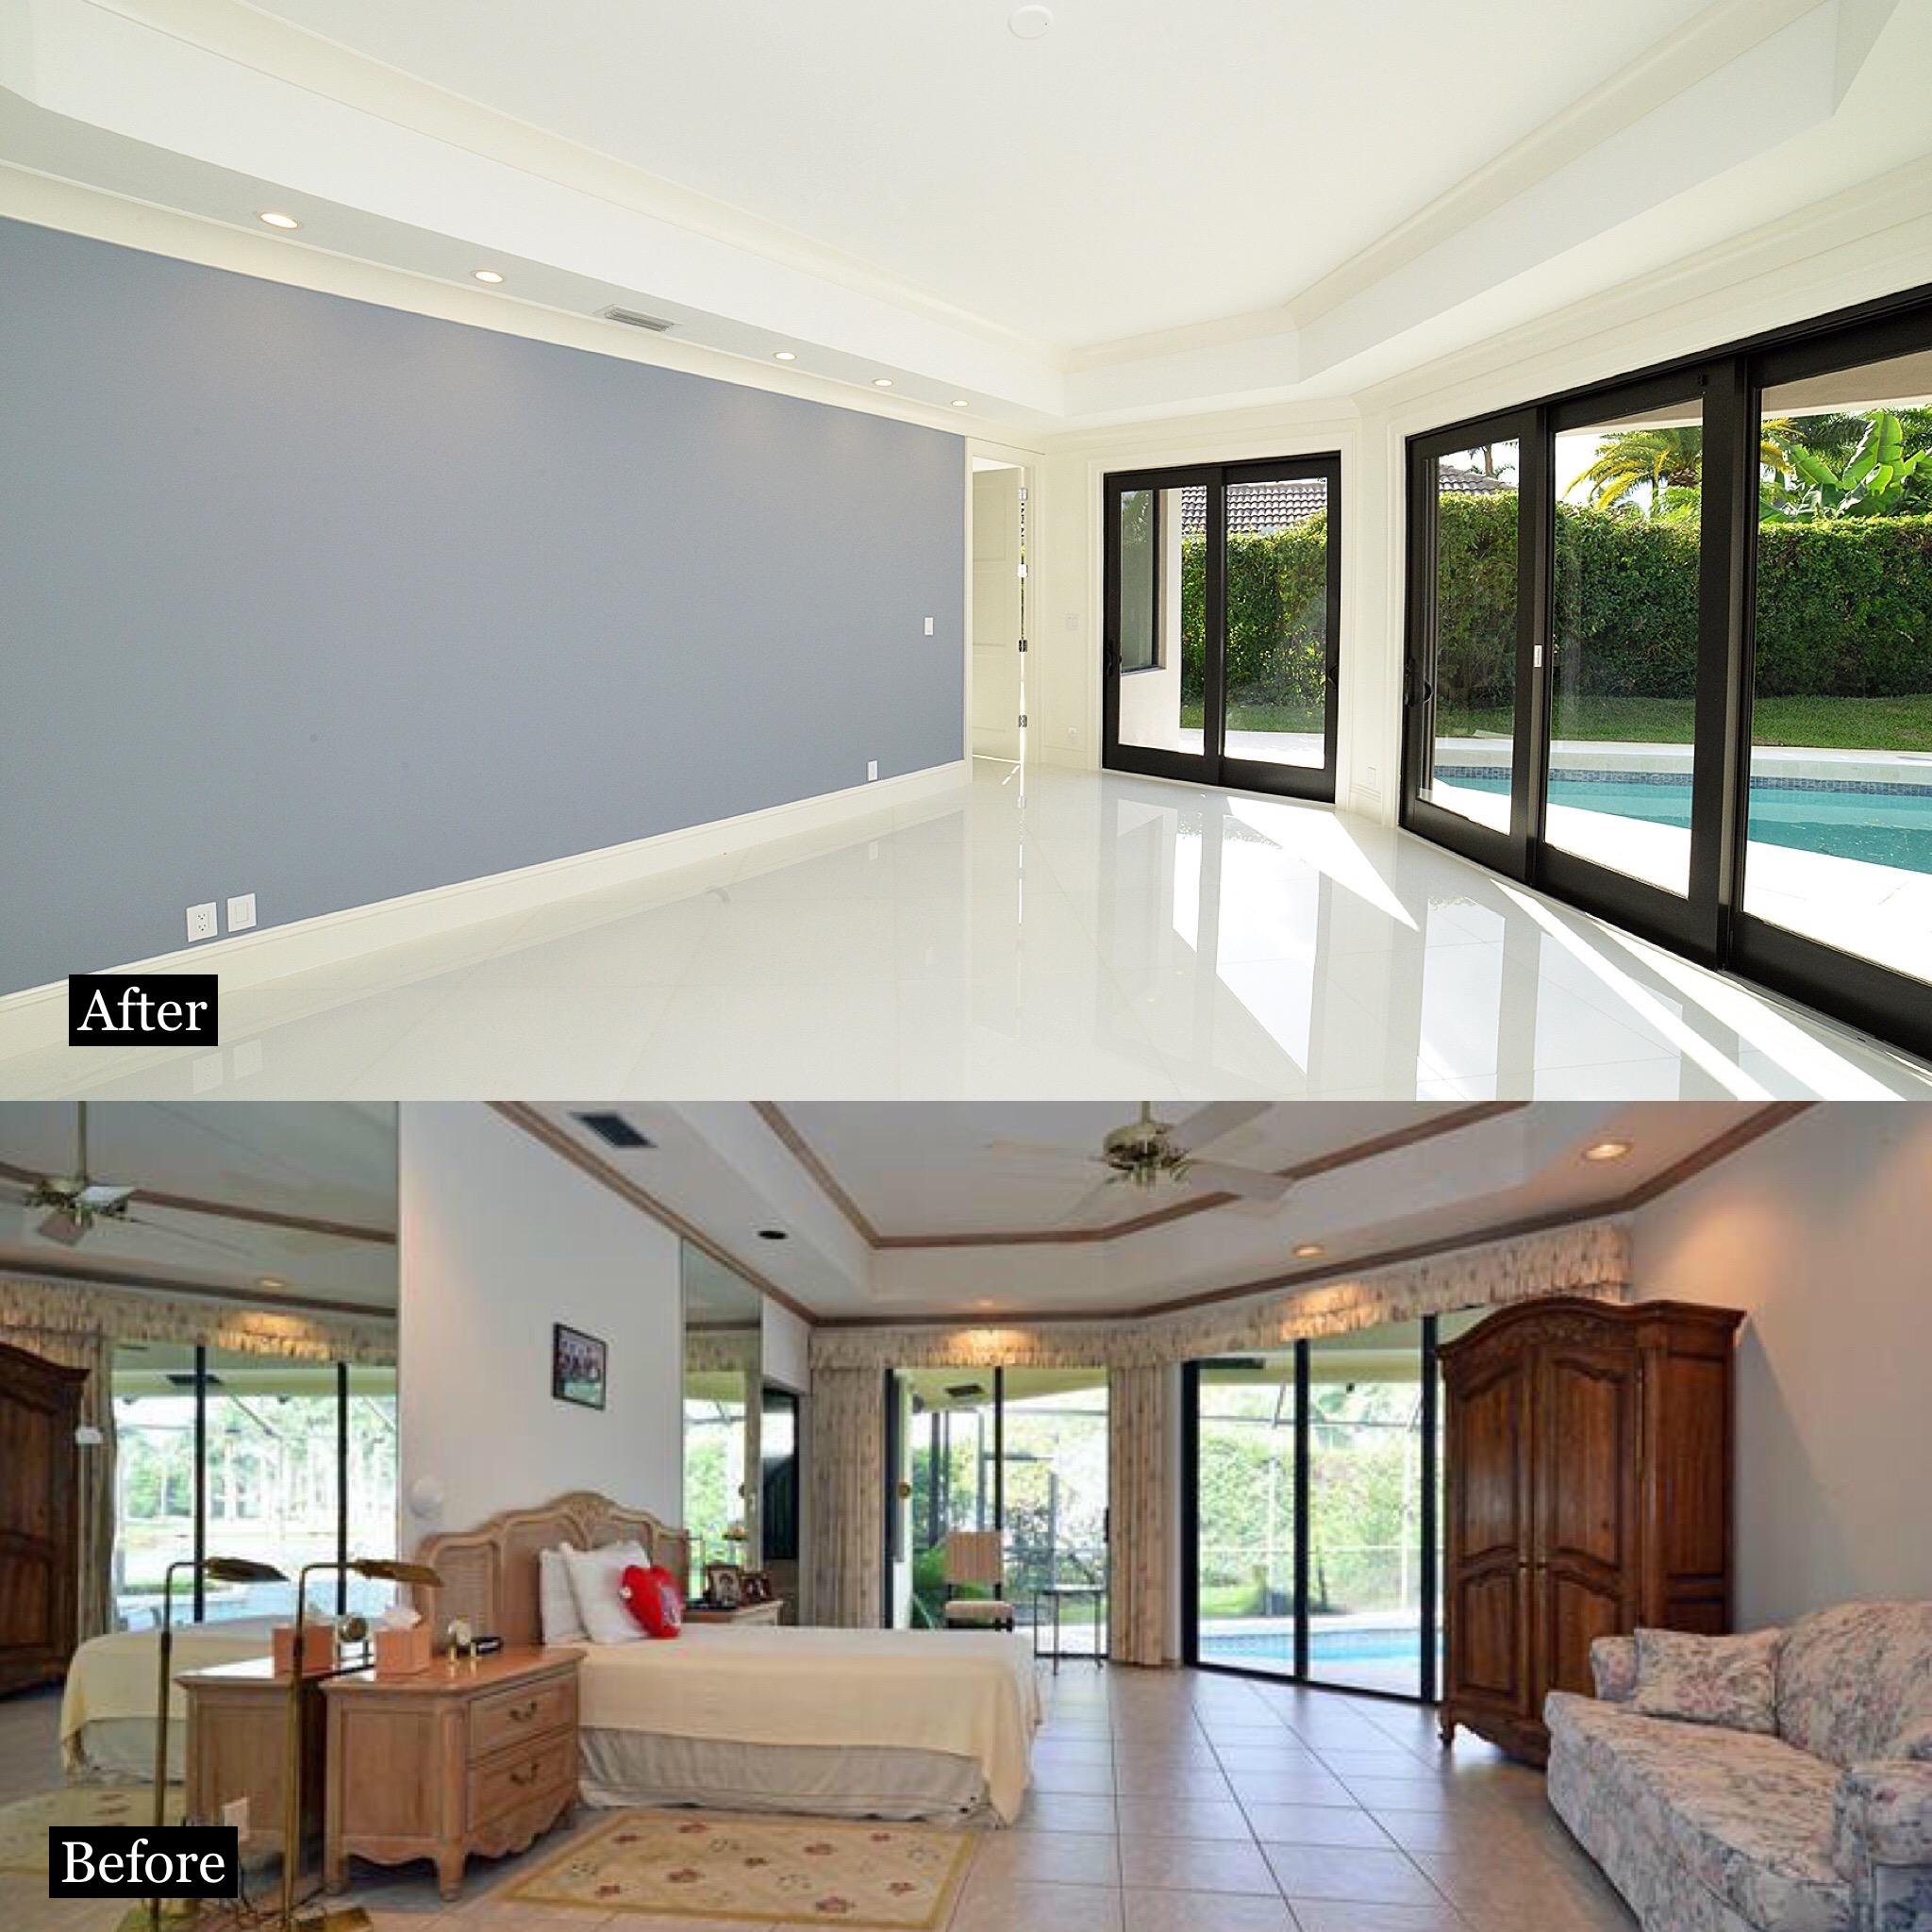 mag real estate & development transformation before after construction general contractor builder renovation south florida boca raton new custom luxury home for sale interior design st. andrews country club 7026 ayrshire lane 9.jpg